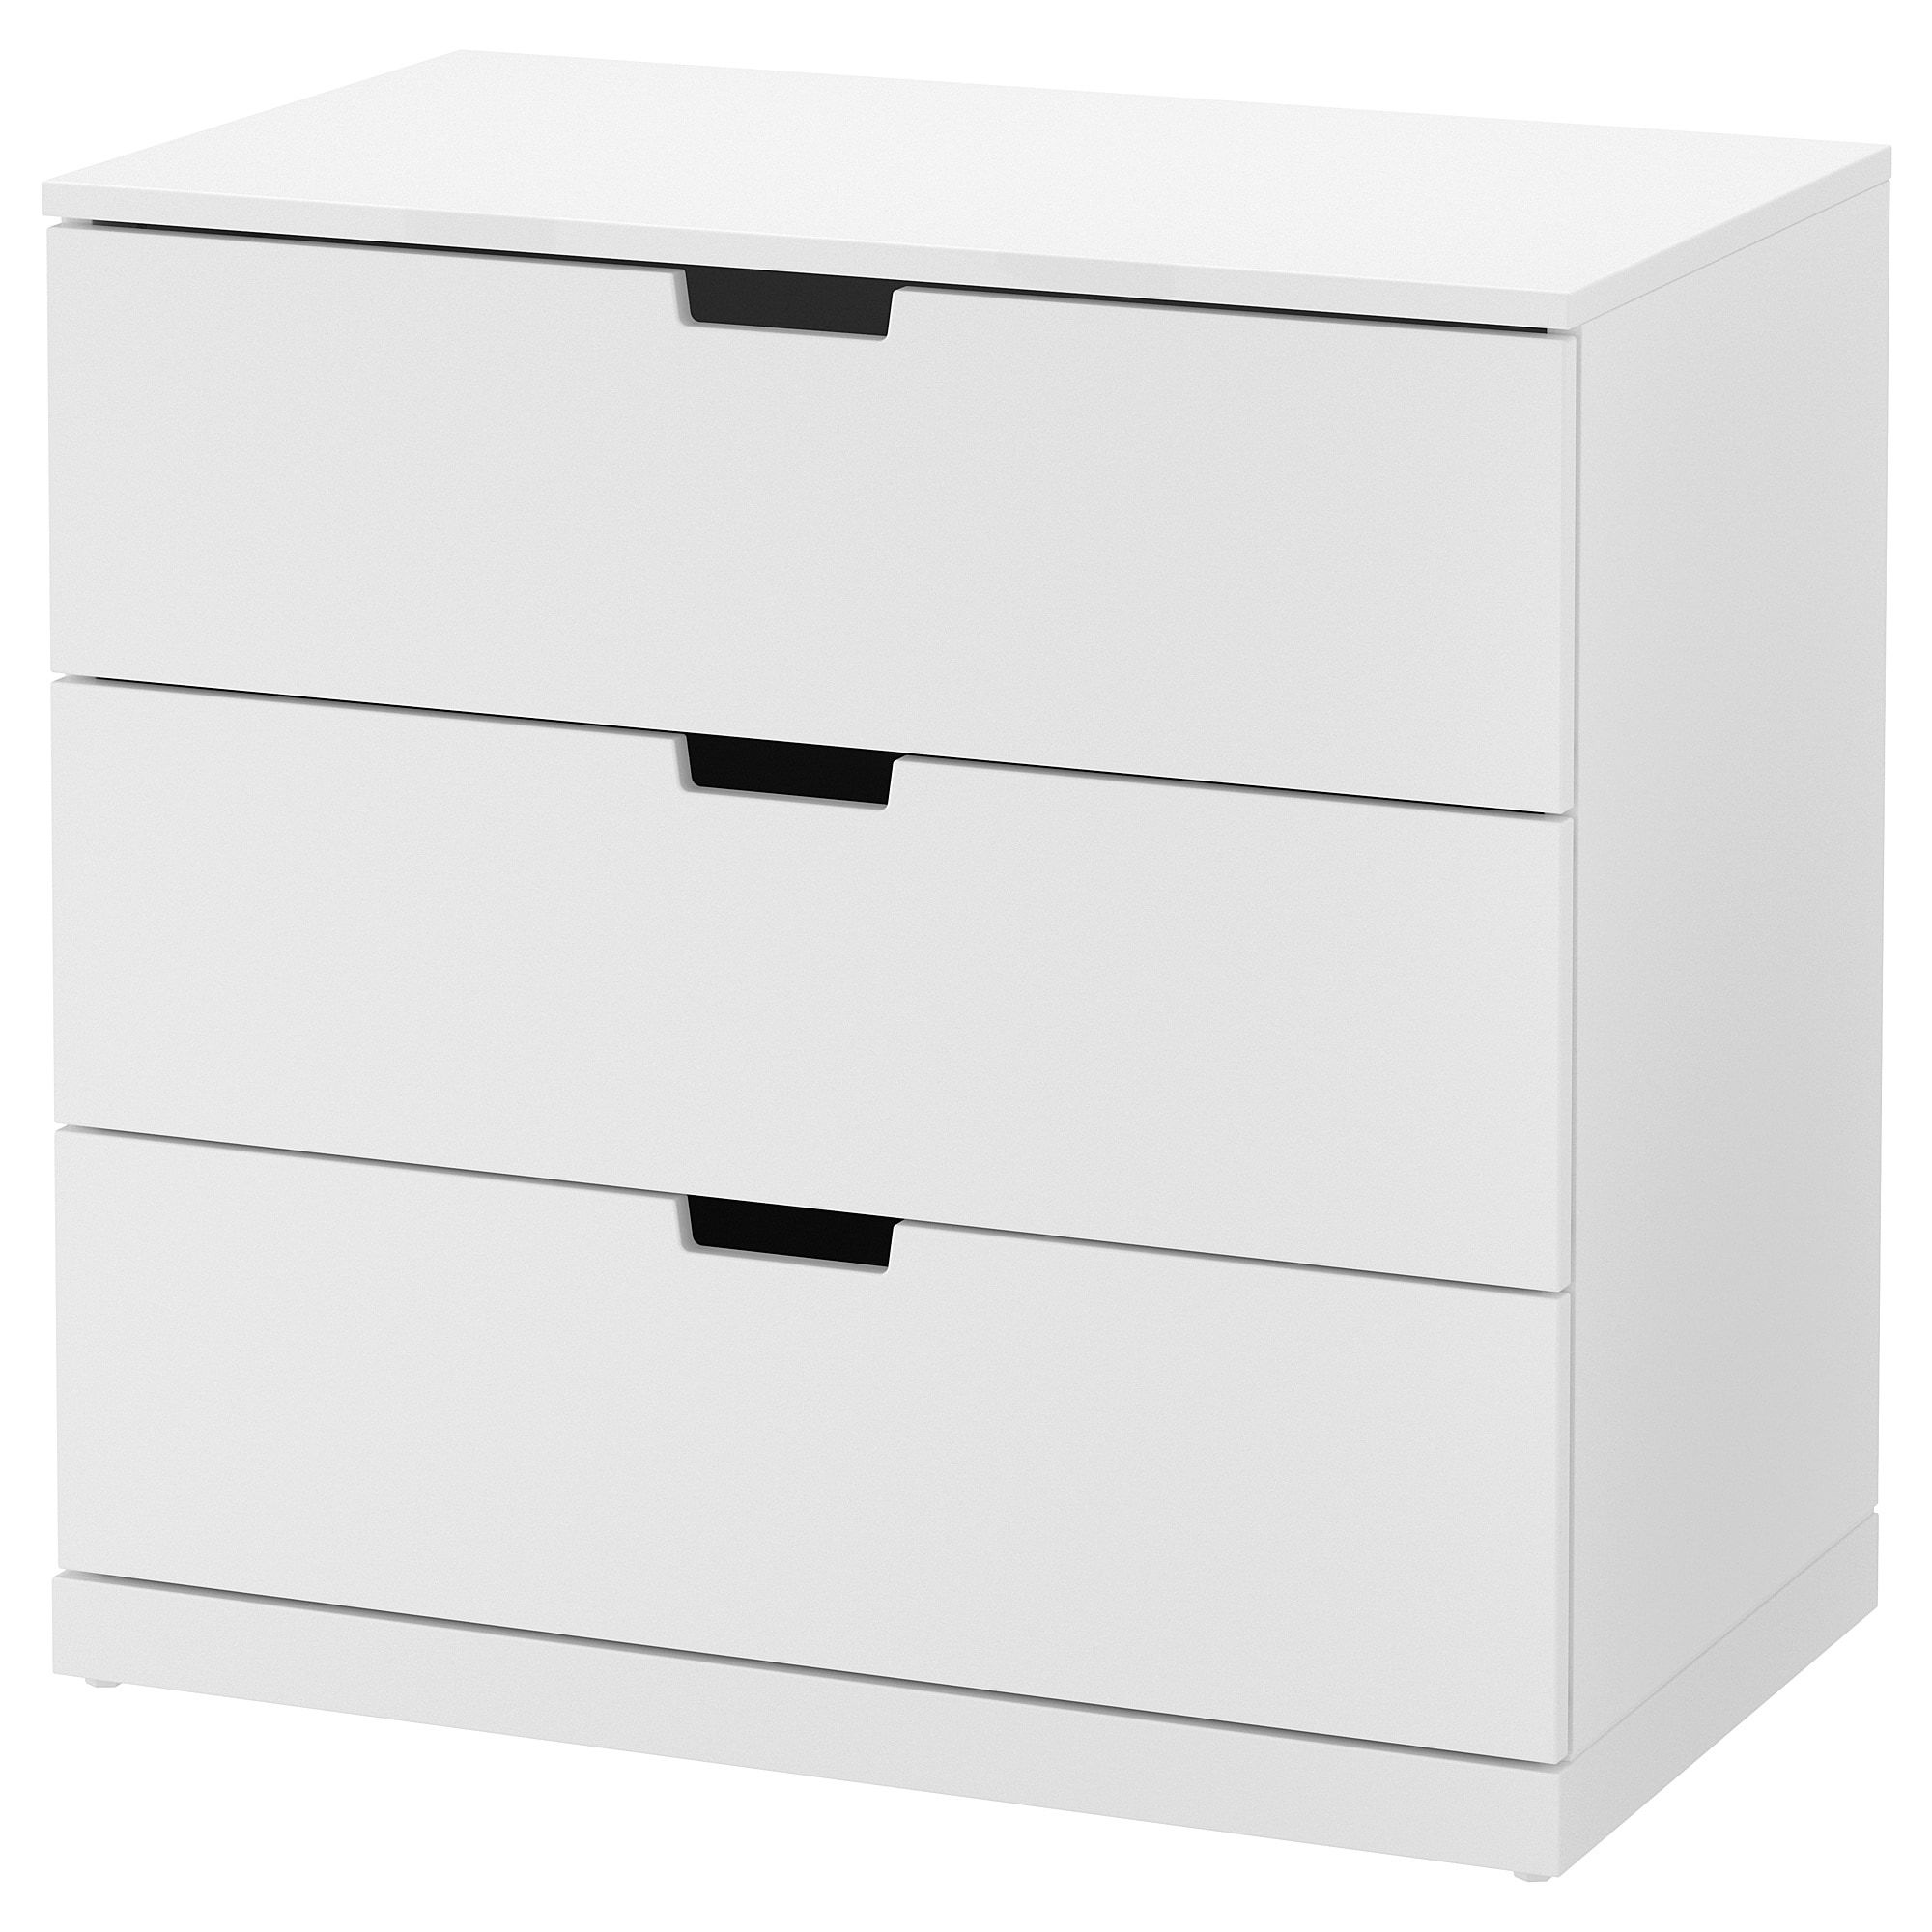 NORDLI 3drawer chest white IKEA in 2020 Chest of